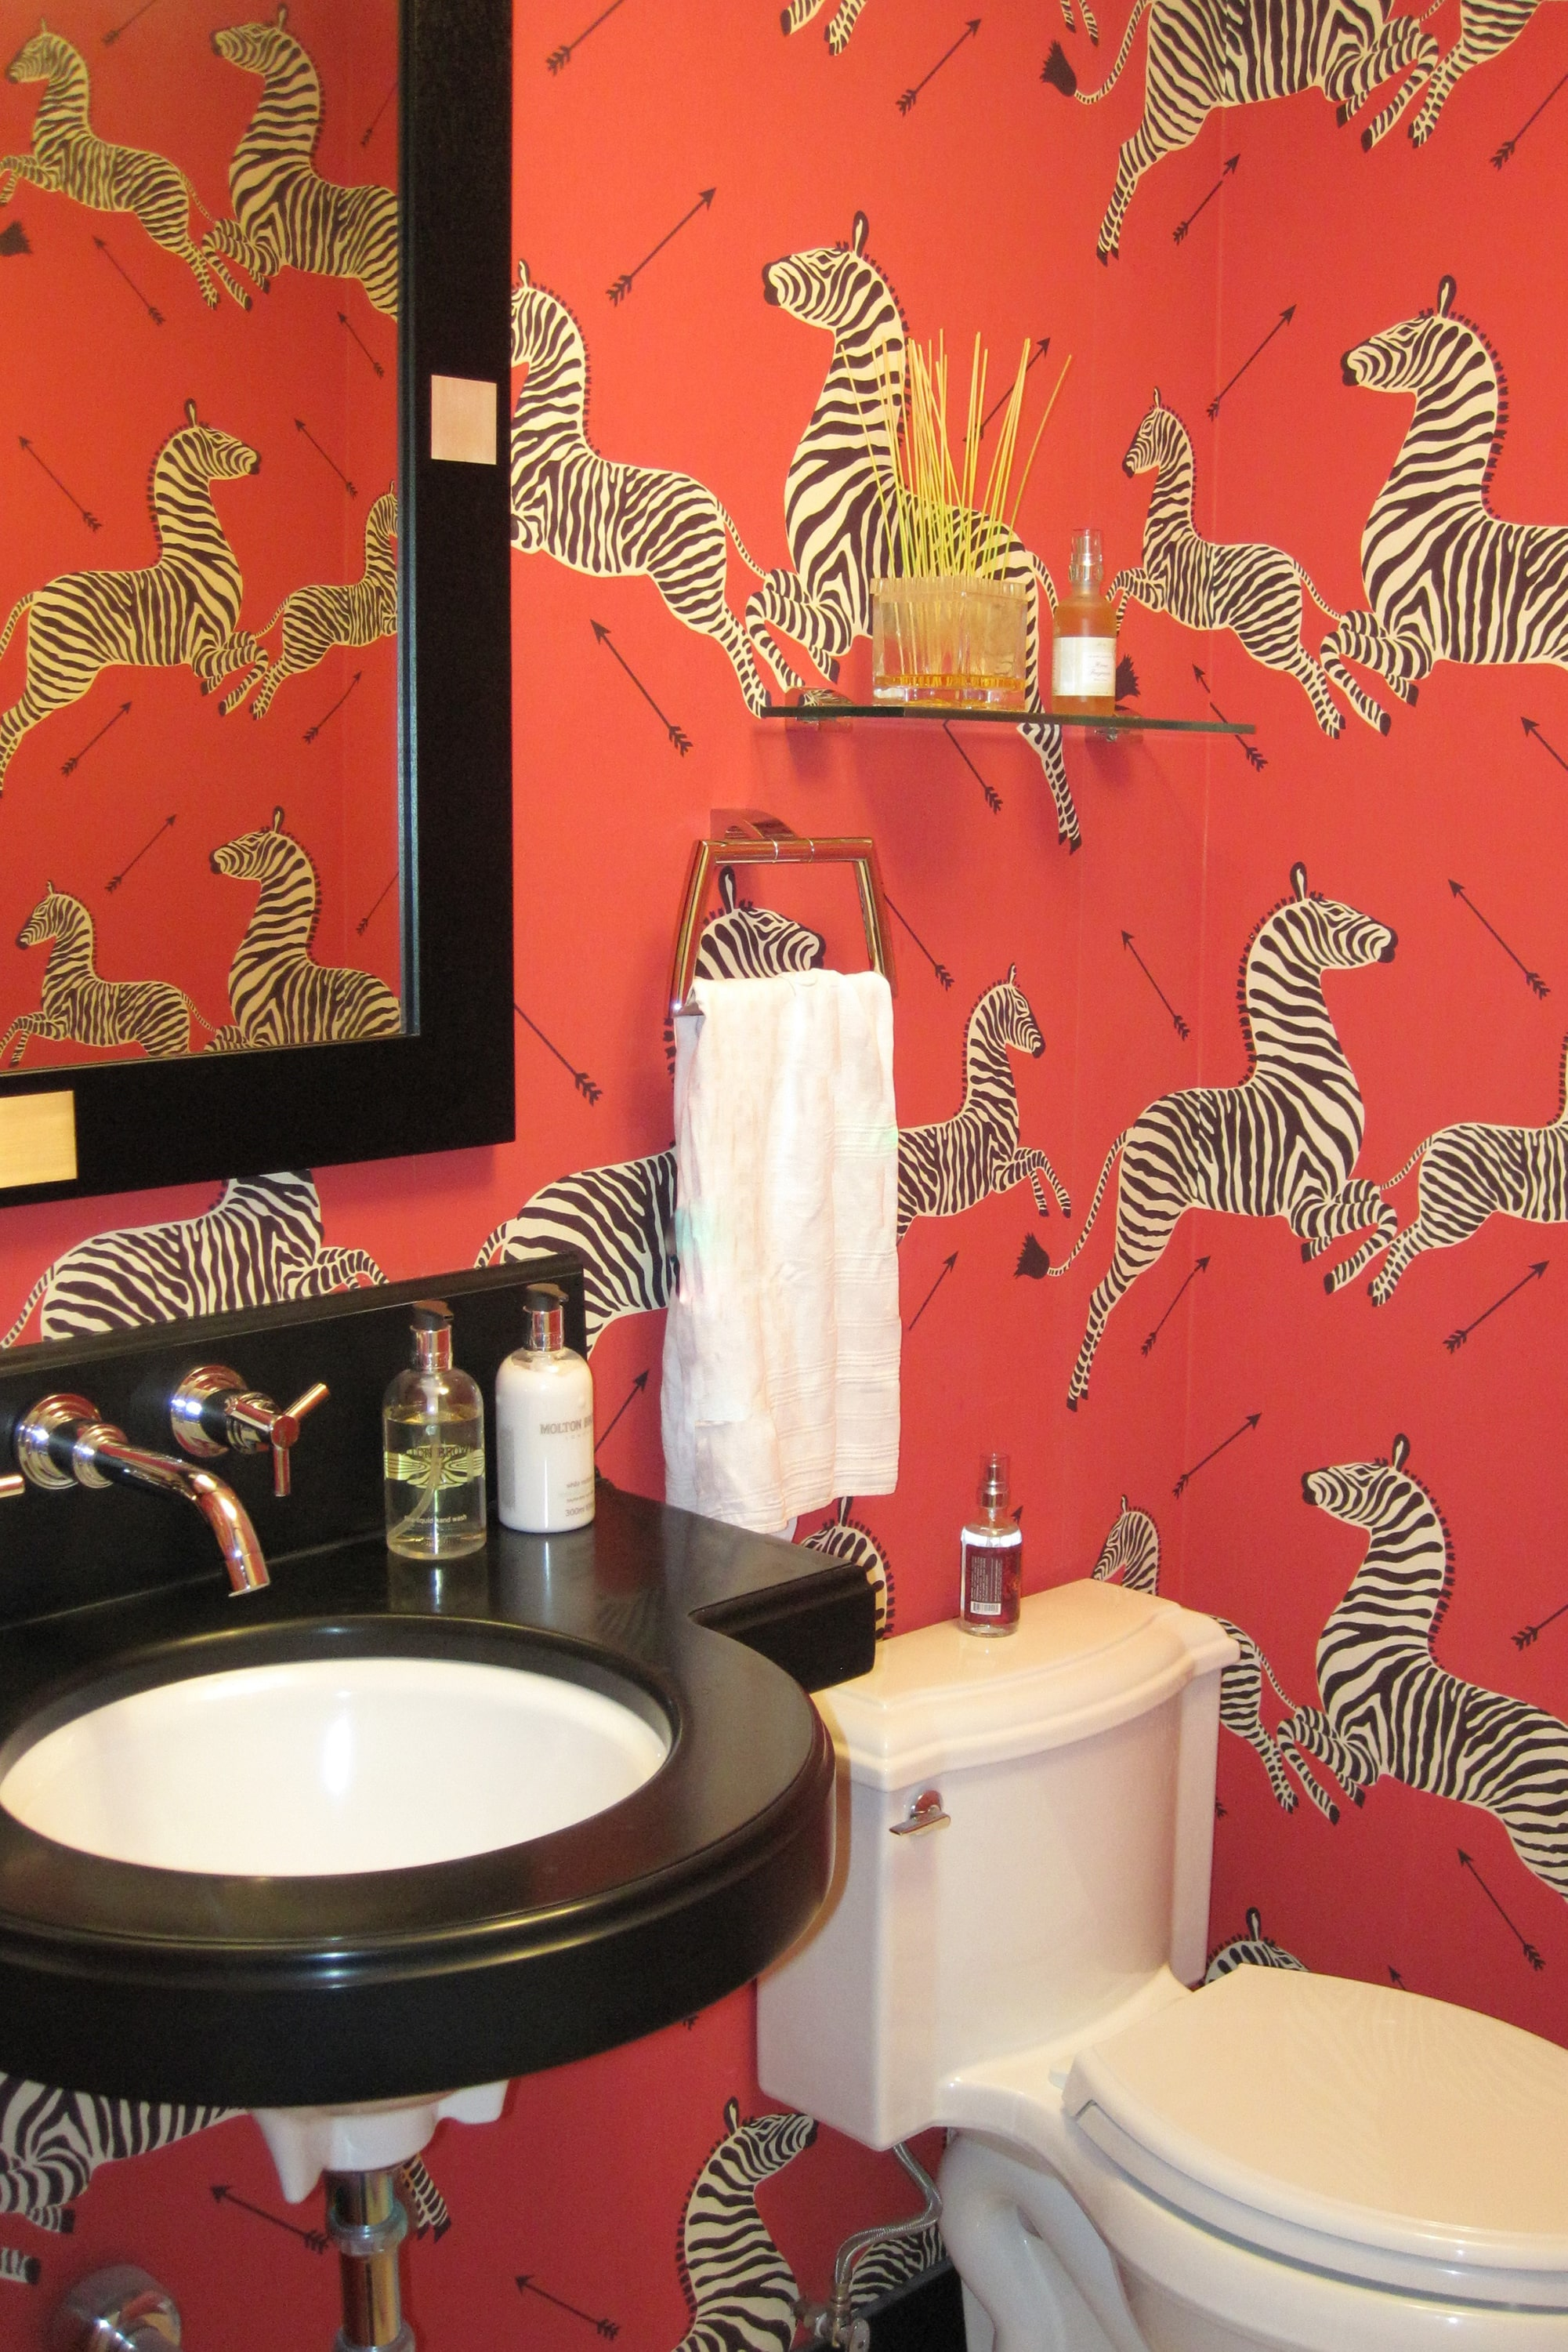 This powder room is a Modern Neo-Classic jewel box. The vibrant polished nickel accents, bold zebra wallpaper, and a custom floating vanity are elegant and whimsical.